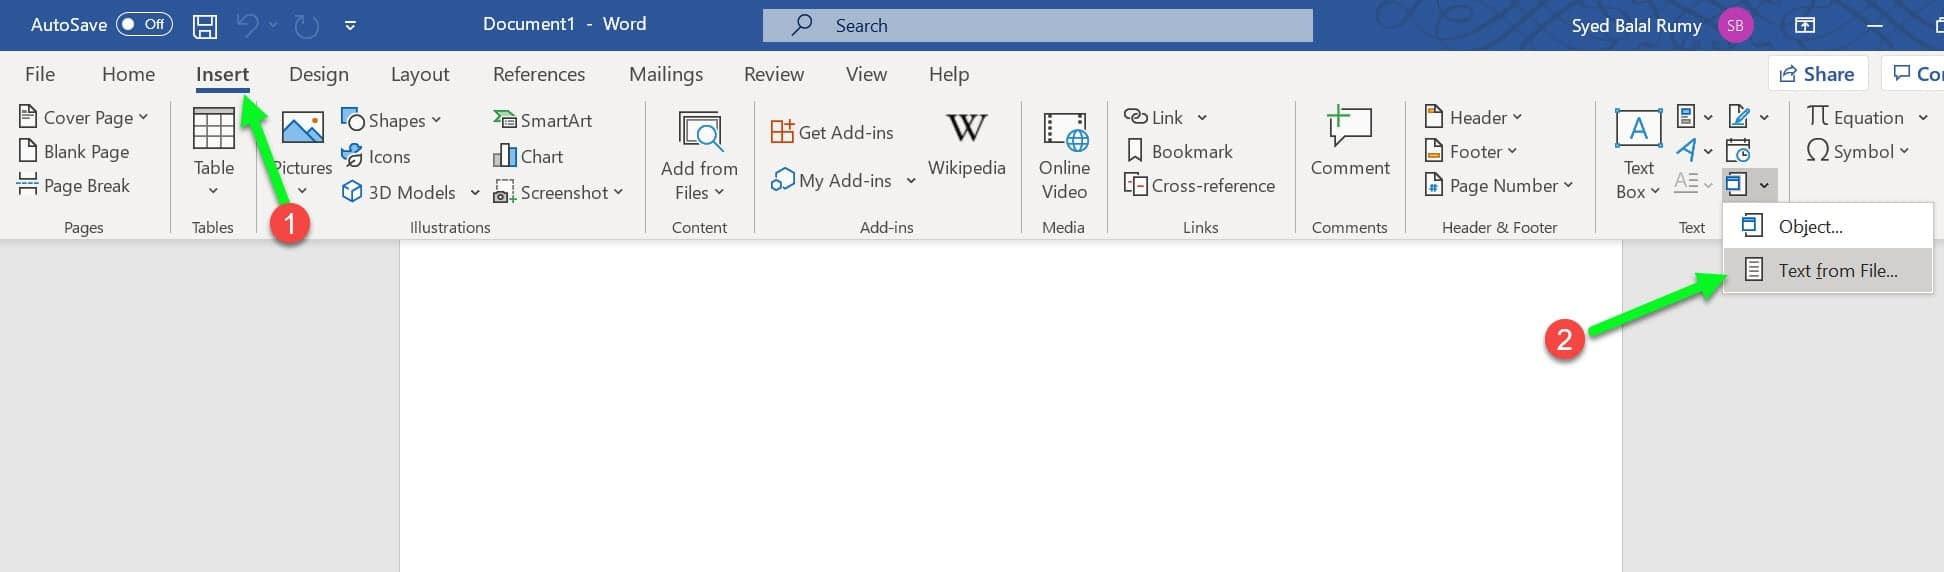 How to Insert PDF Into Word: Best 8 Methods